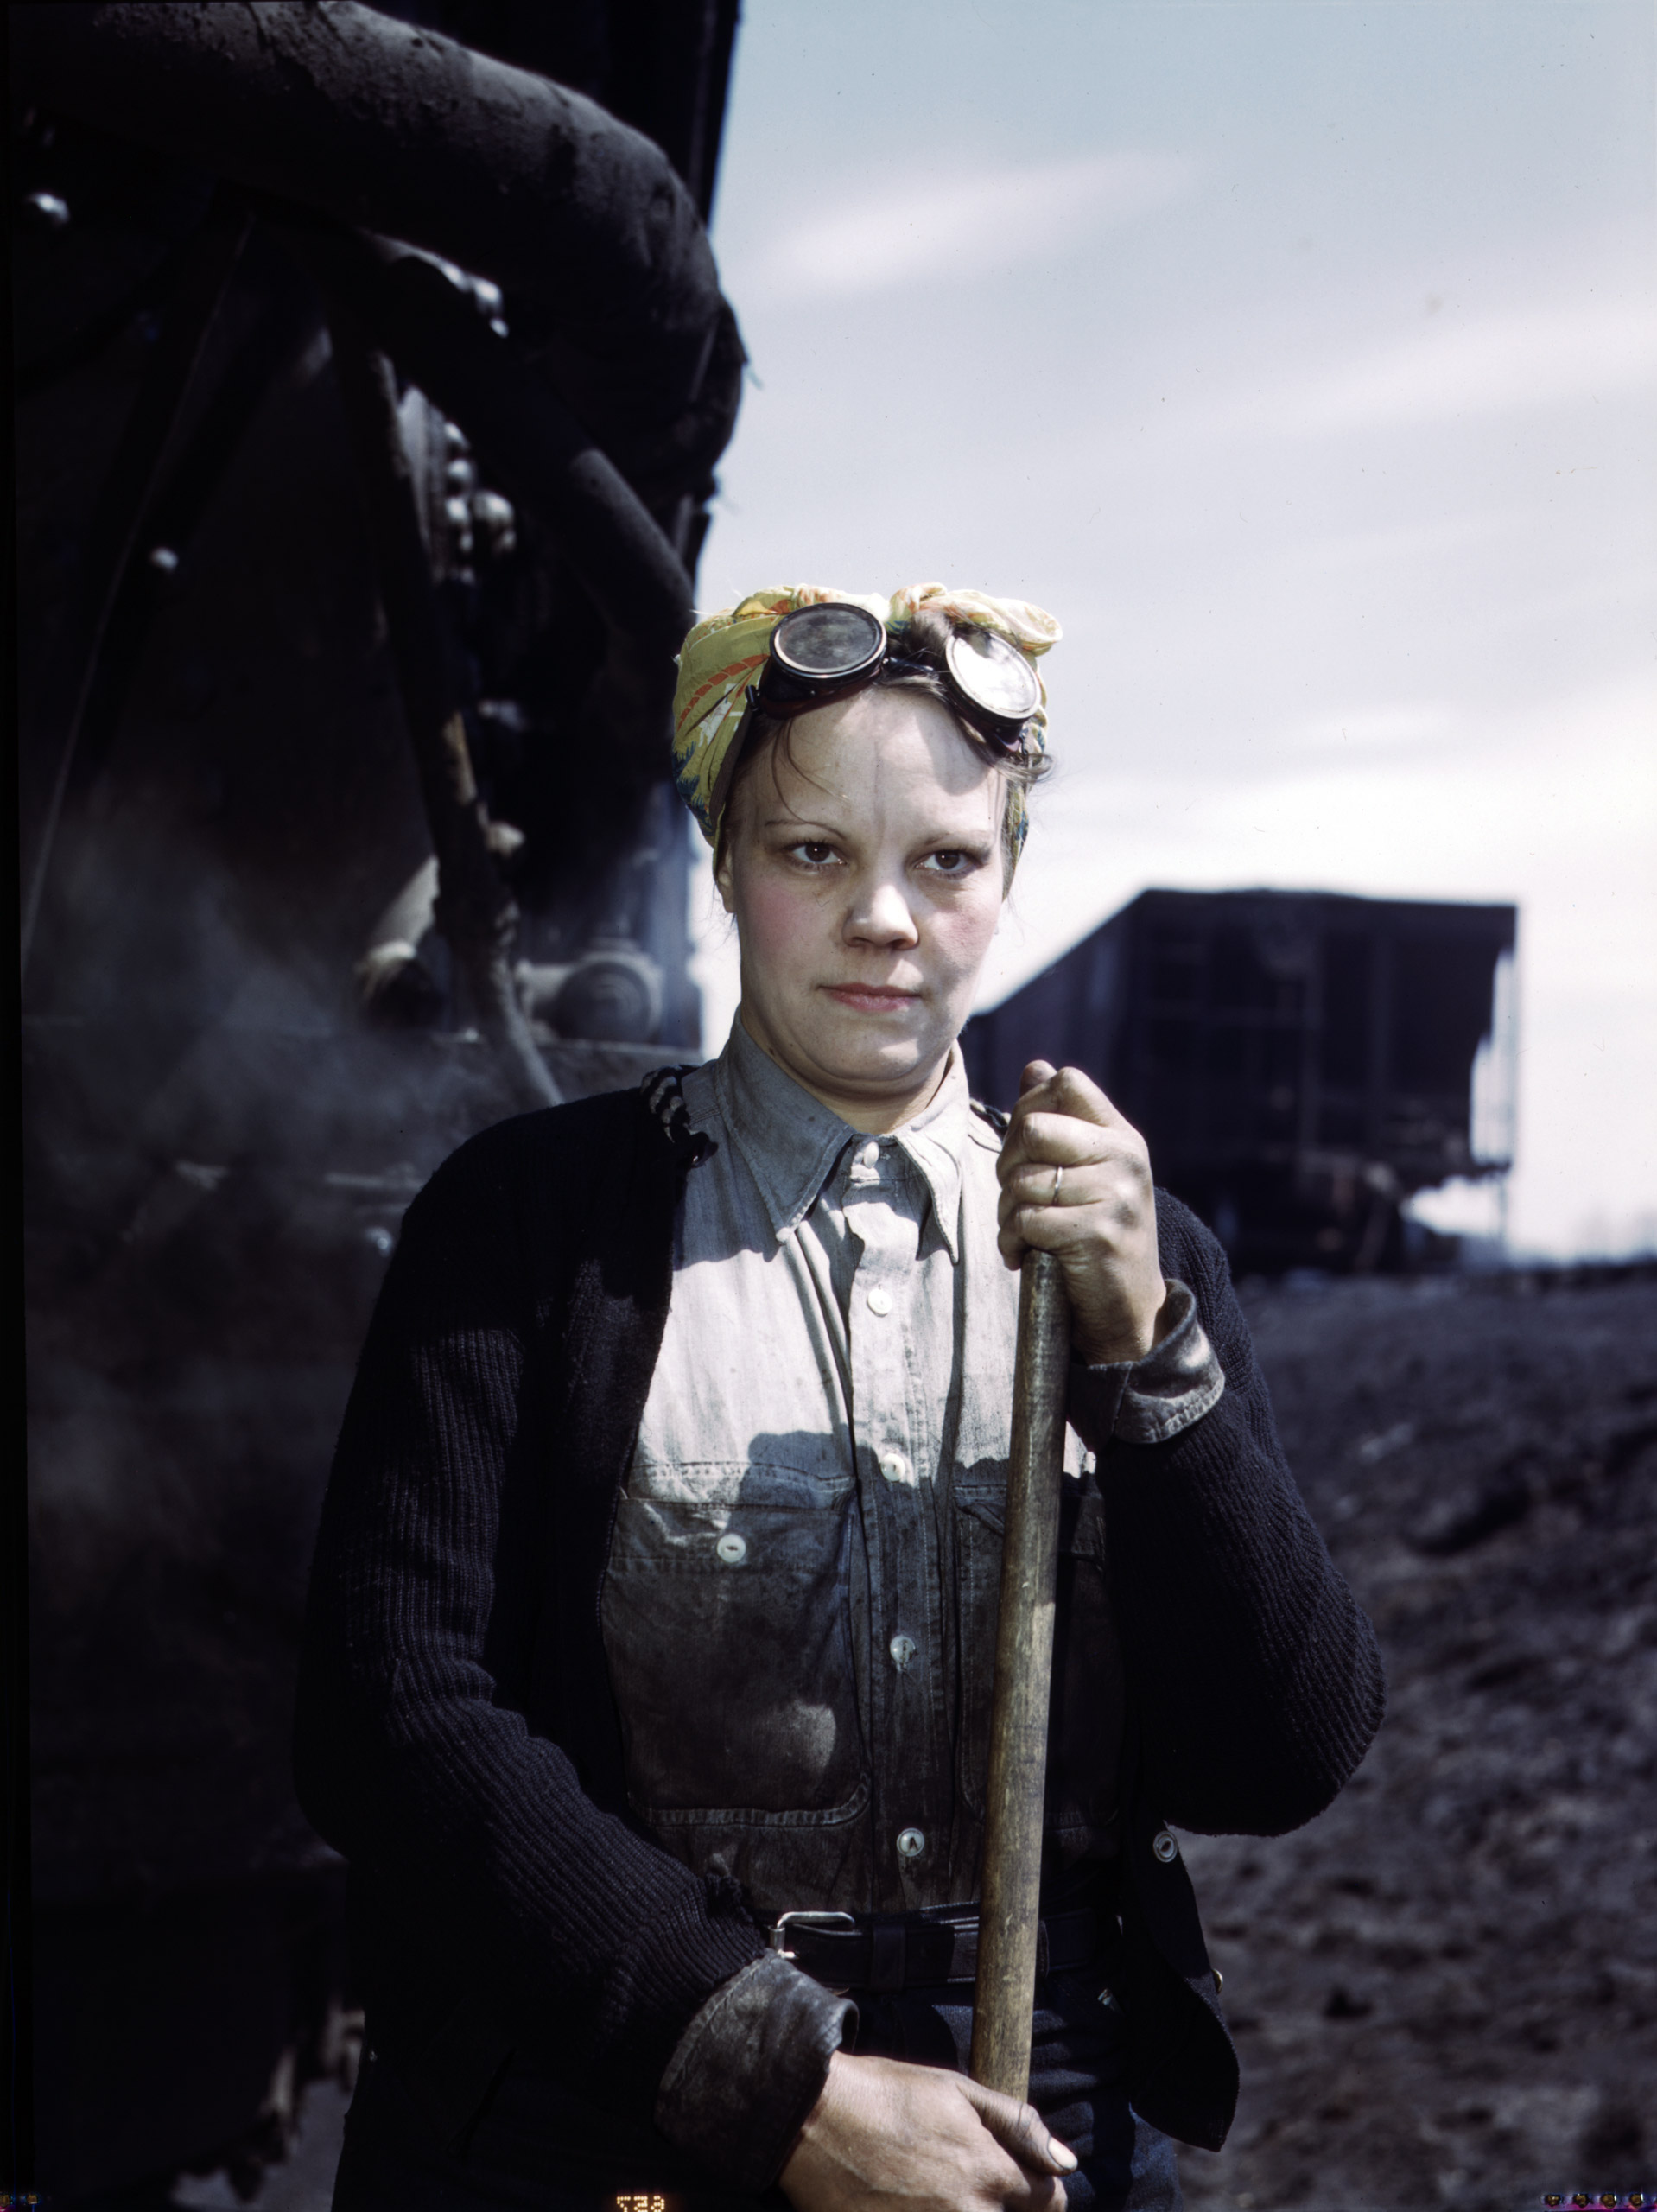 Chicago and North Western Railway Company, Mrs. Irene Bracker, mother of two children, employed at the roundhouse as a wiper, Clinton, Iowa. April 1943. Photographed by Jack Delano for the Farm Security Administration.